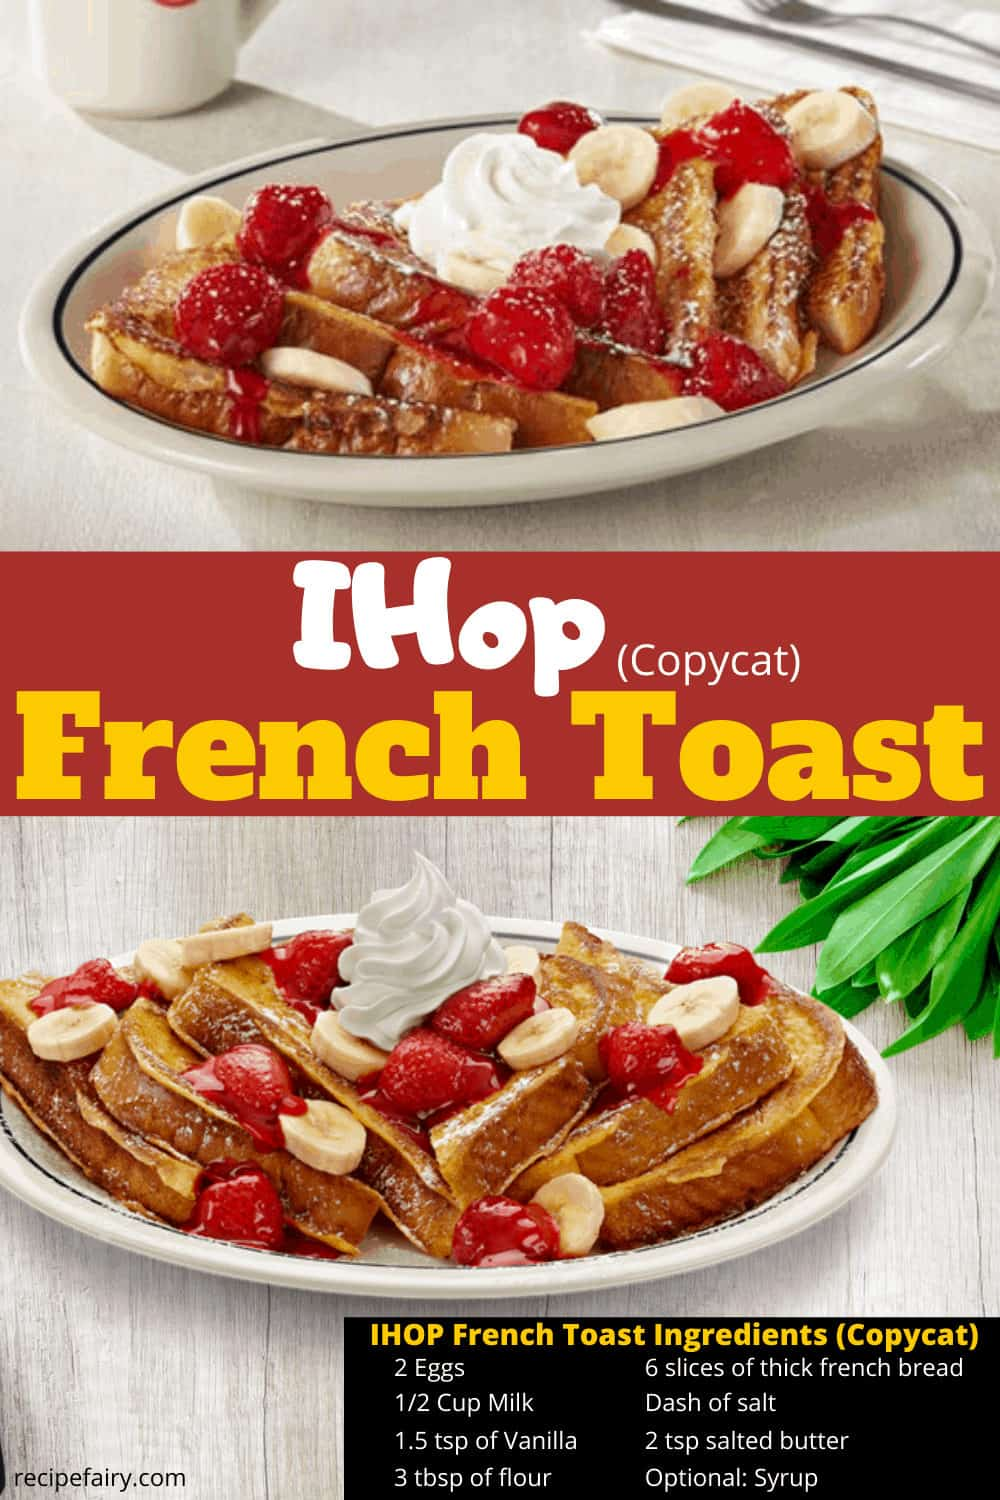 ihop french toast